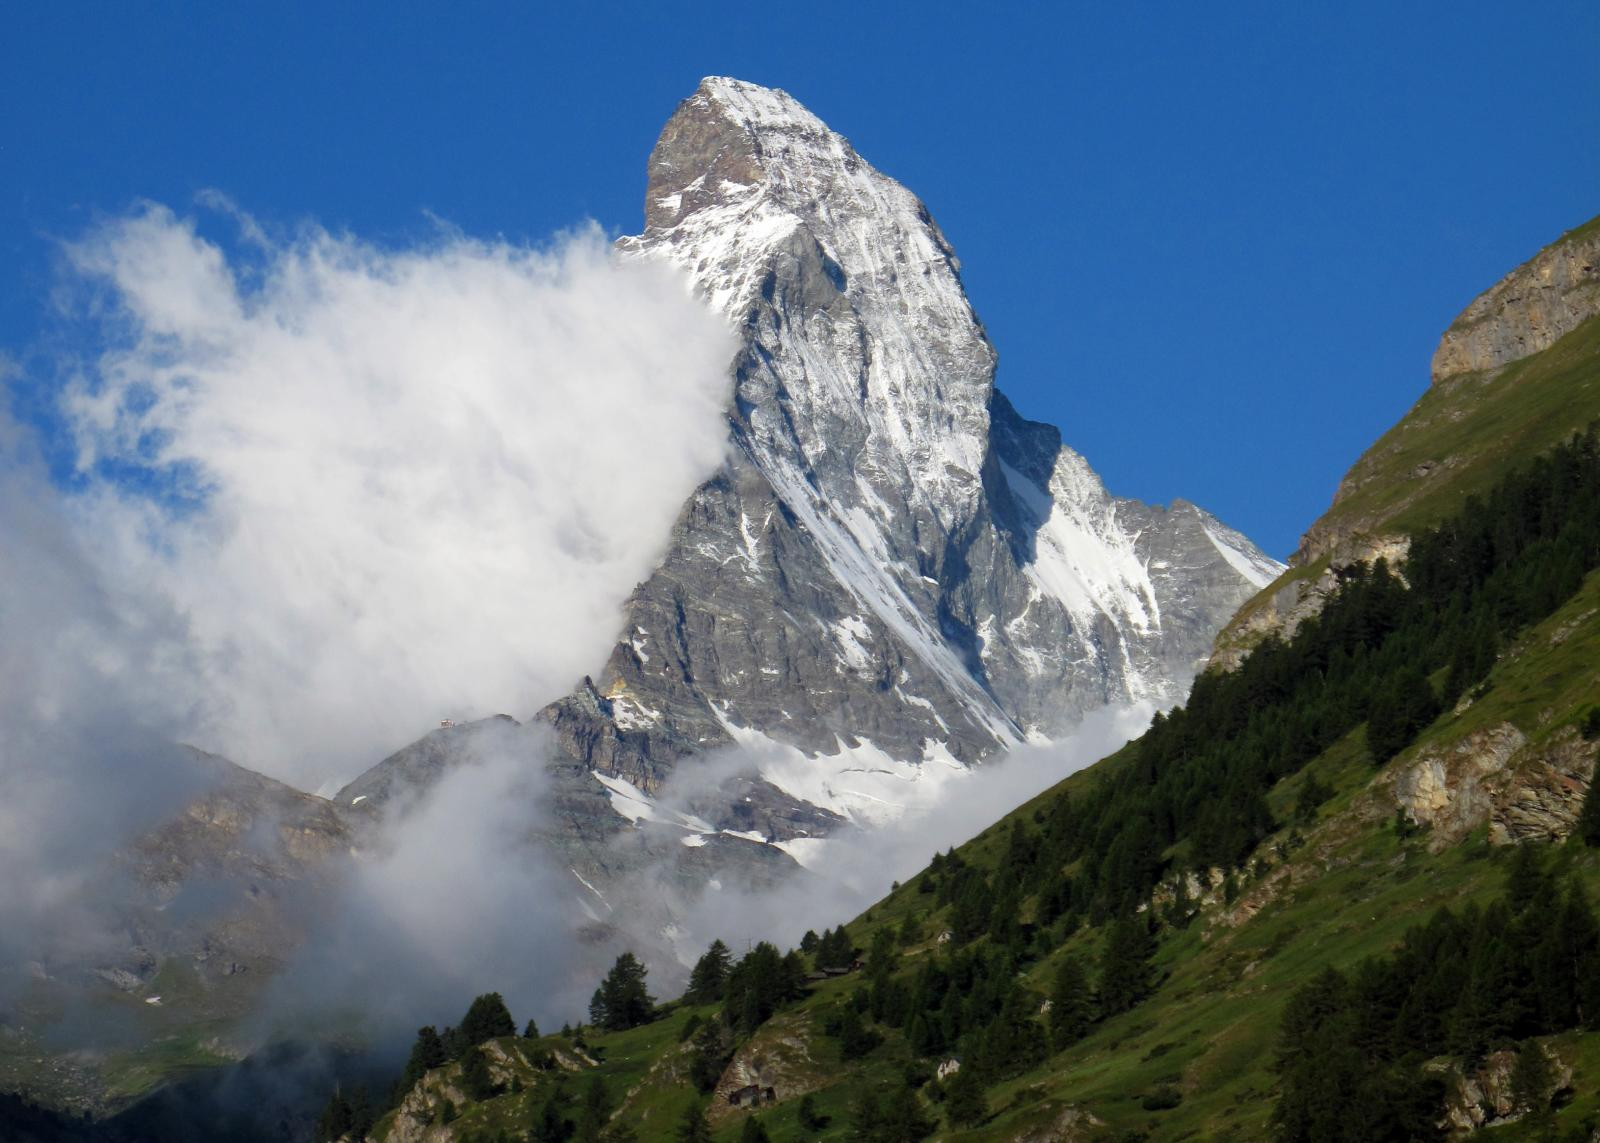 the matterhorn one of the most danegerous mountains in world